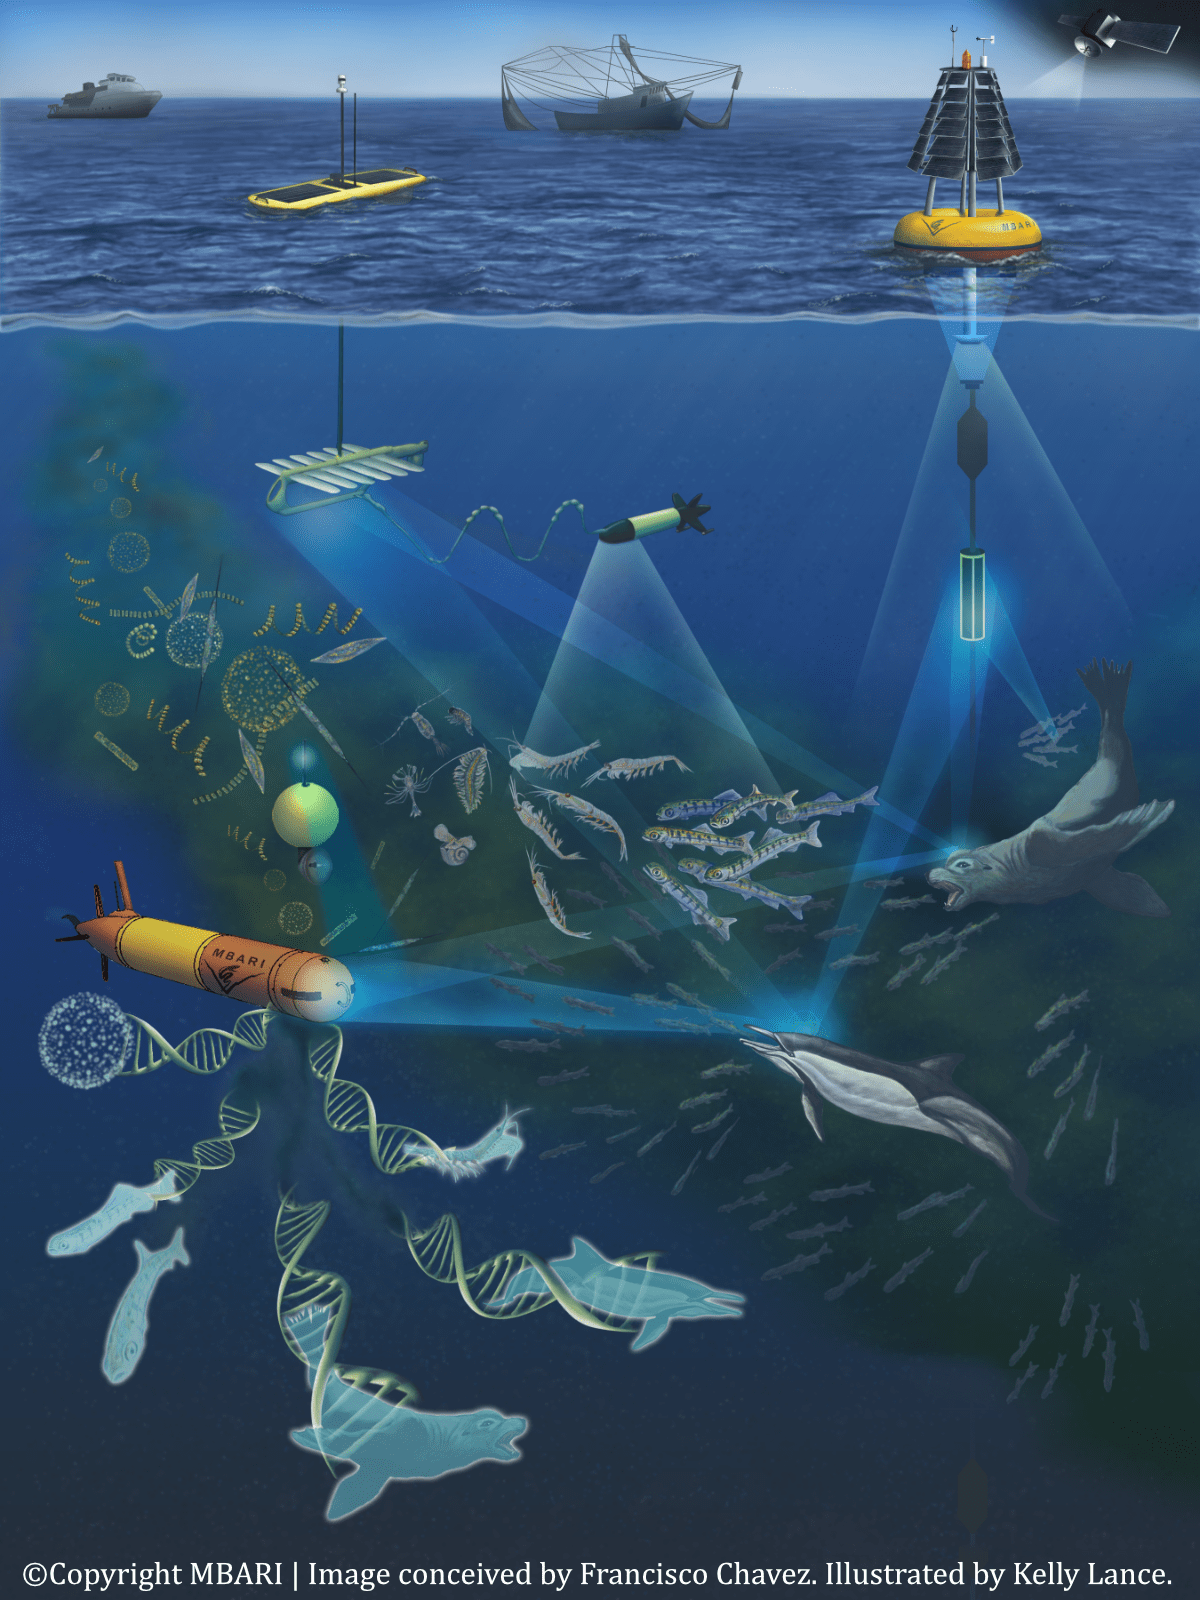 ©Copyright MBARI   Image conceived by Francisco Chavez. Illustrated by Kelly Lance